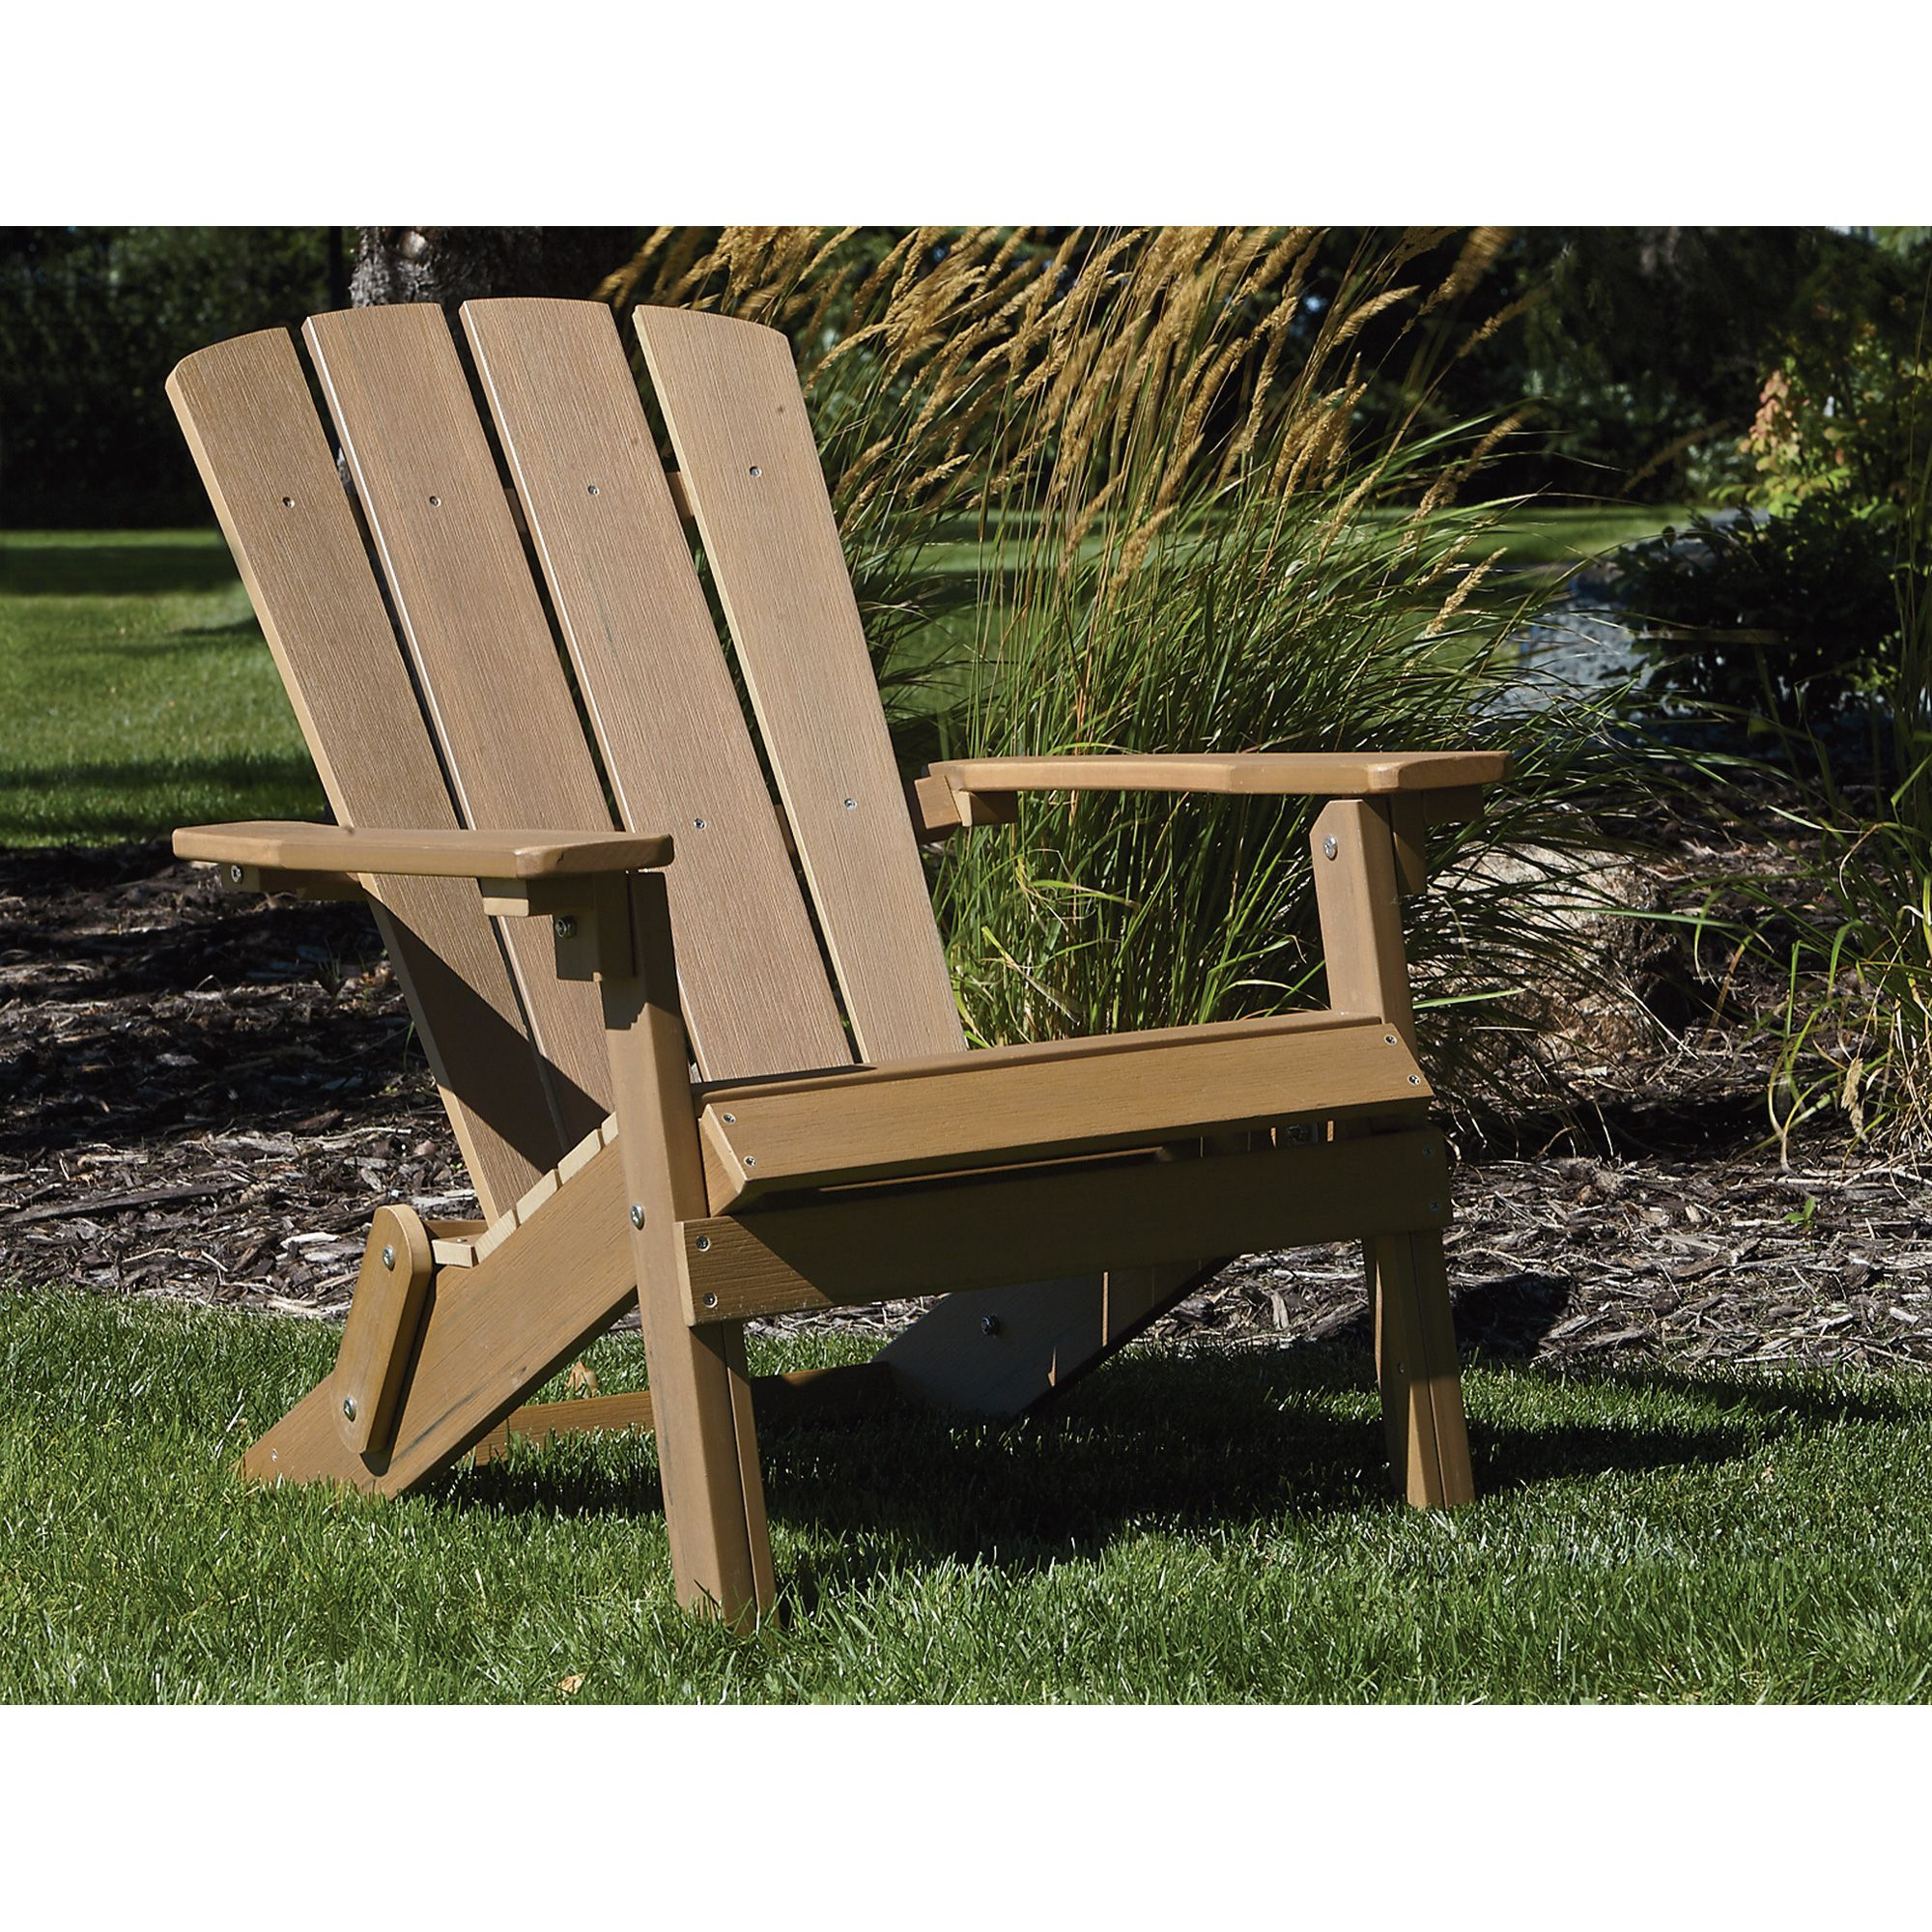 upcycled chair muskoka recycled adirondack composite things patio do furniture chairs